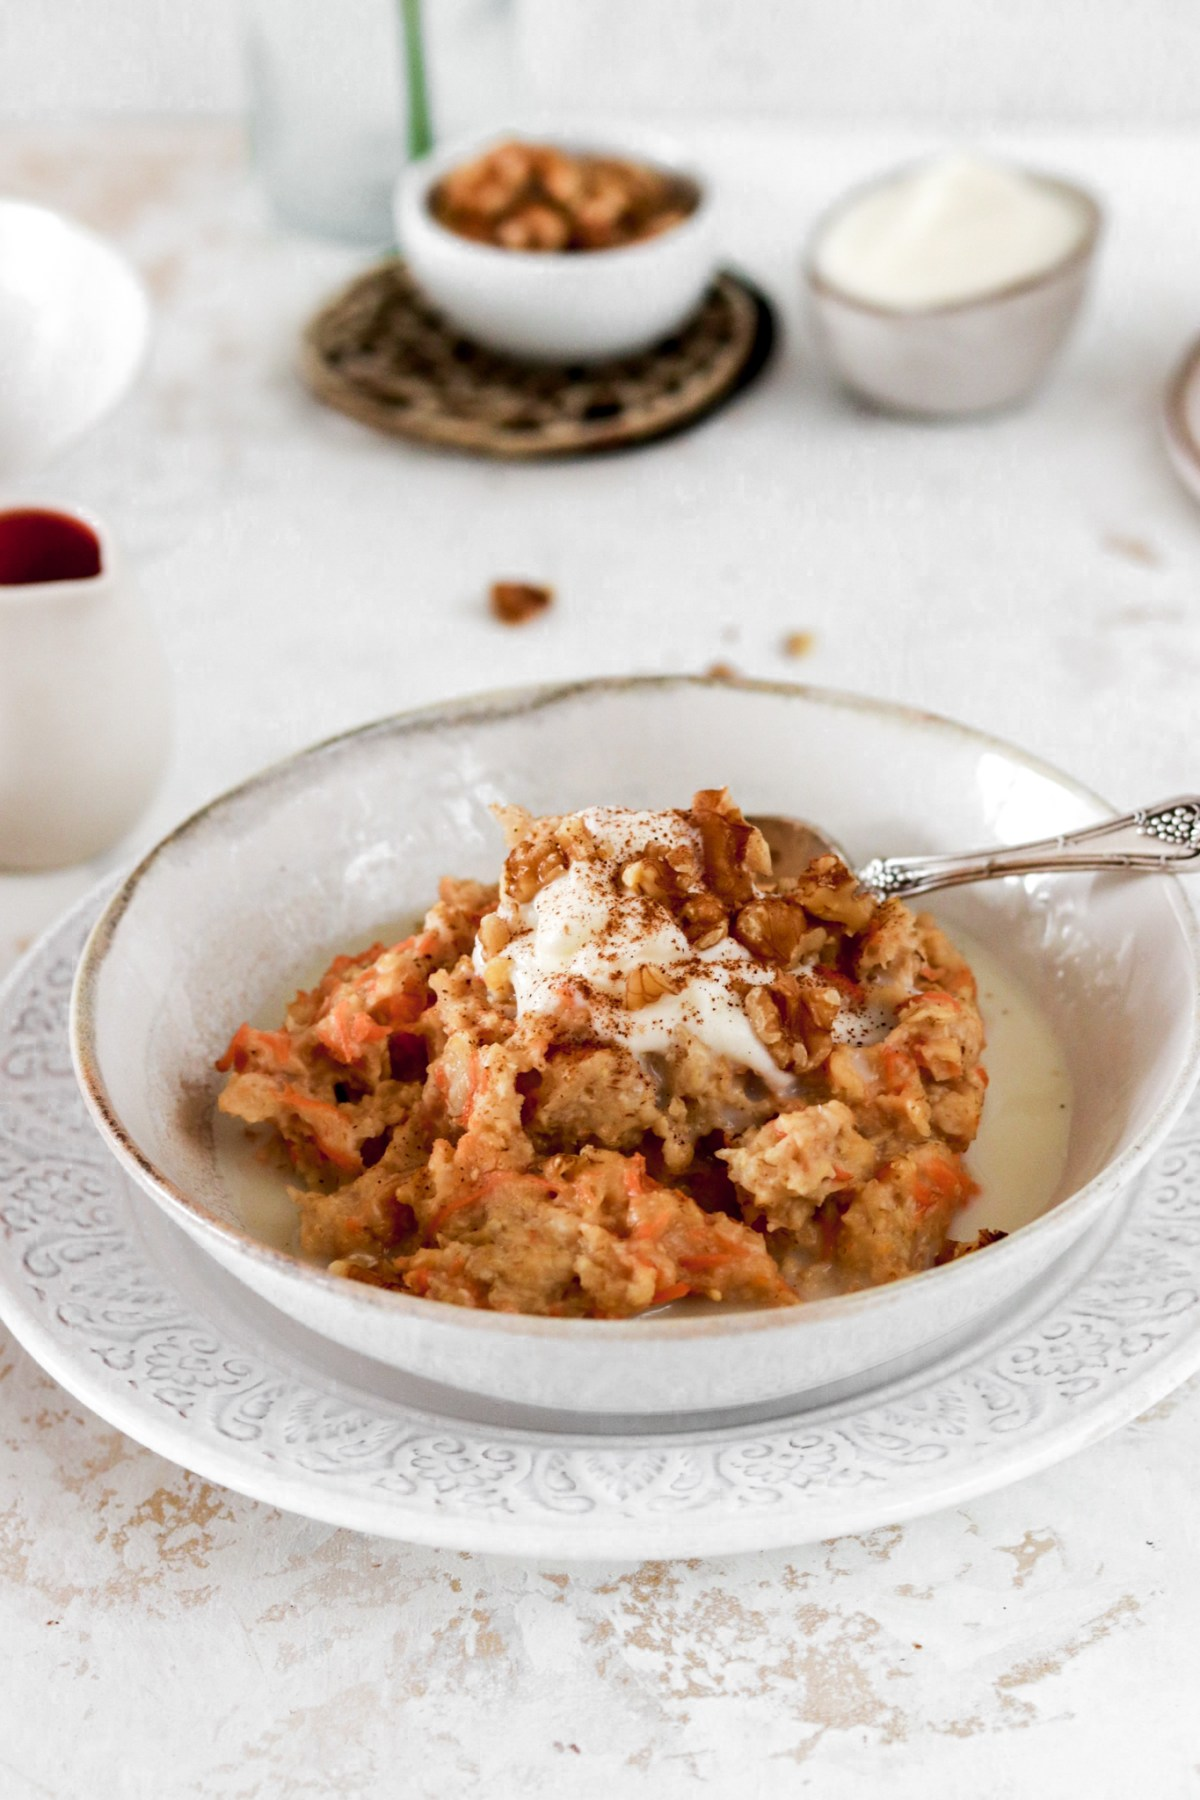 Carrot Cake Oatmeal (Vegan, Gluten, Dairy & Sugar Free) From Close Up